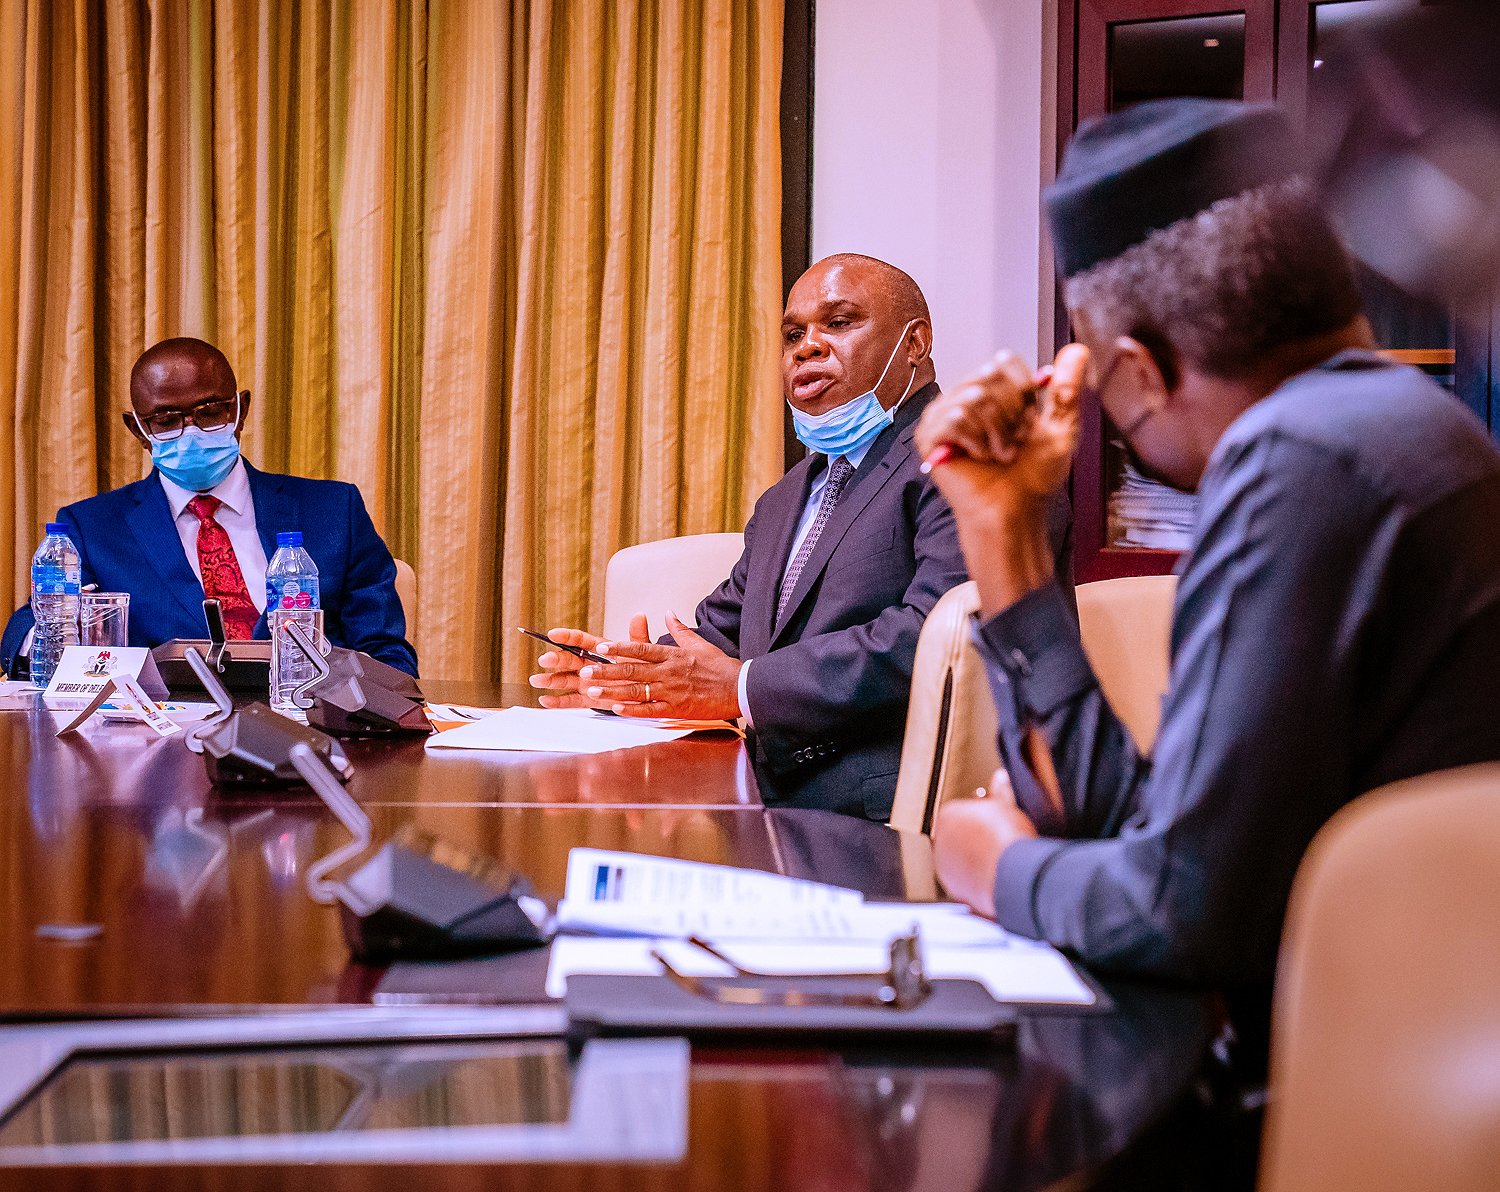 VP Osinbajo Receives In Audience, The Executive Delegation Of Afrexim Bank Led By Its CEO Prof. Oramah On 17/08/2021